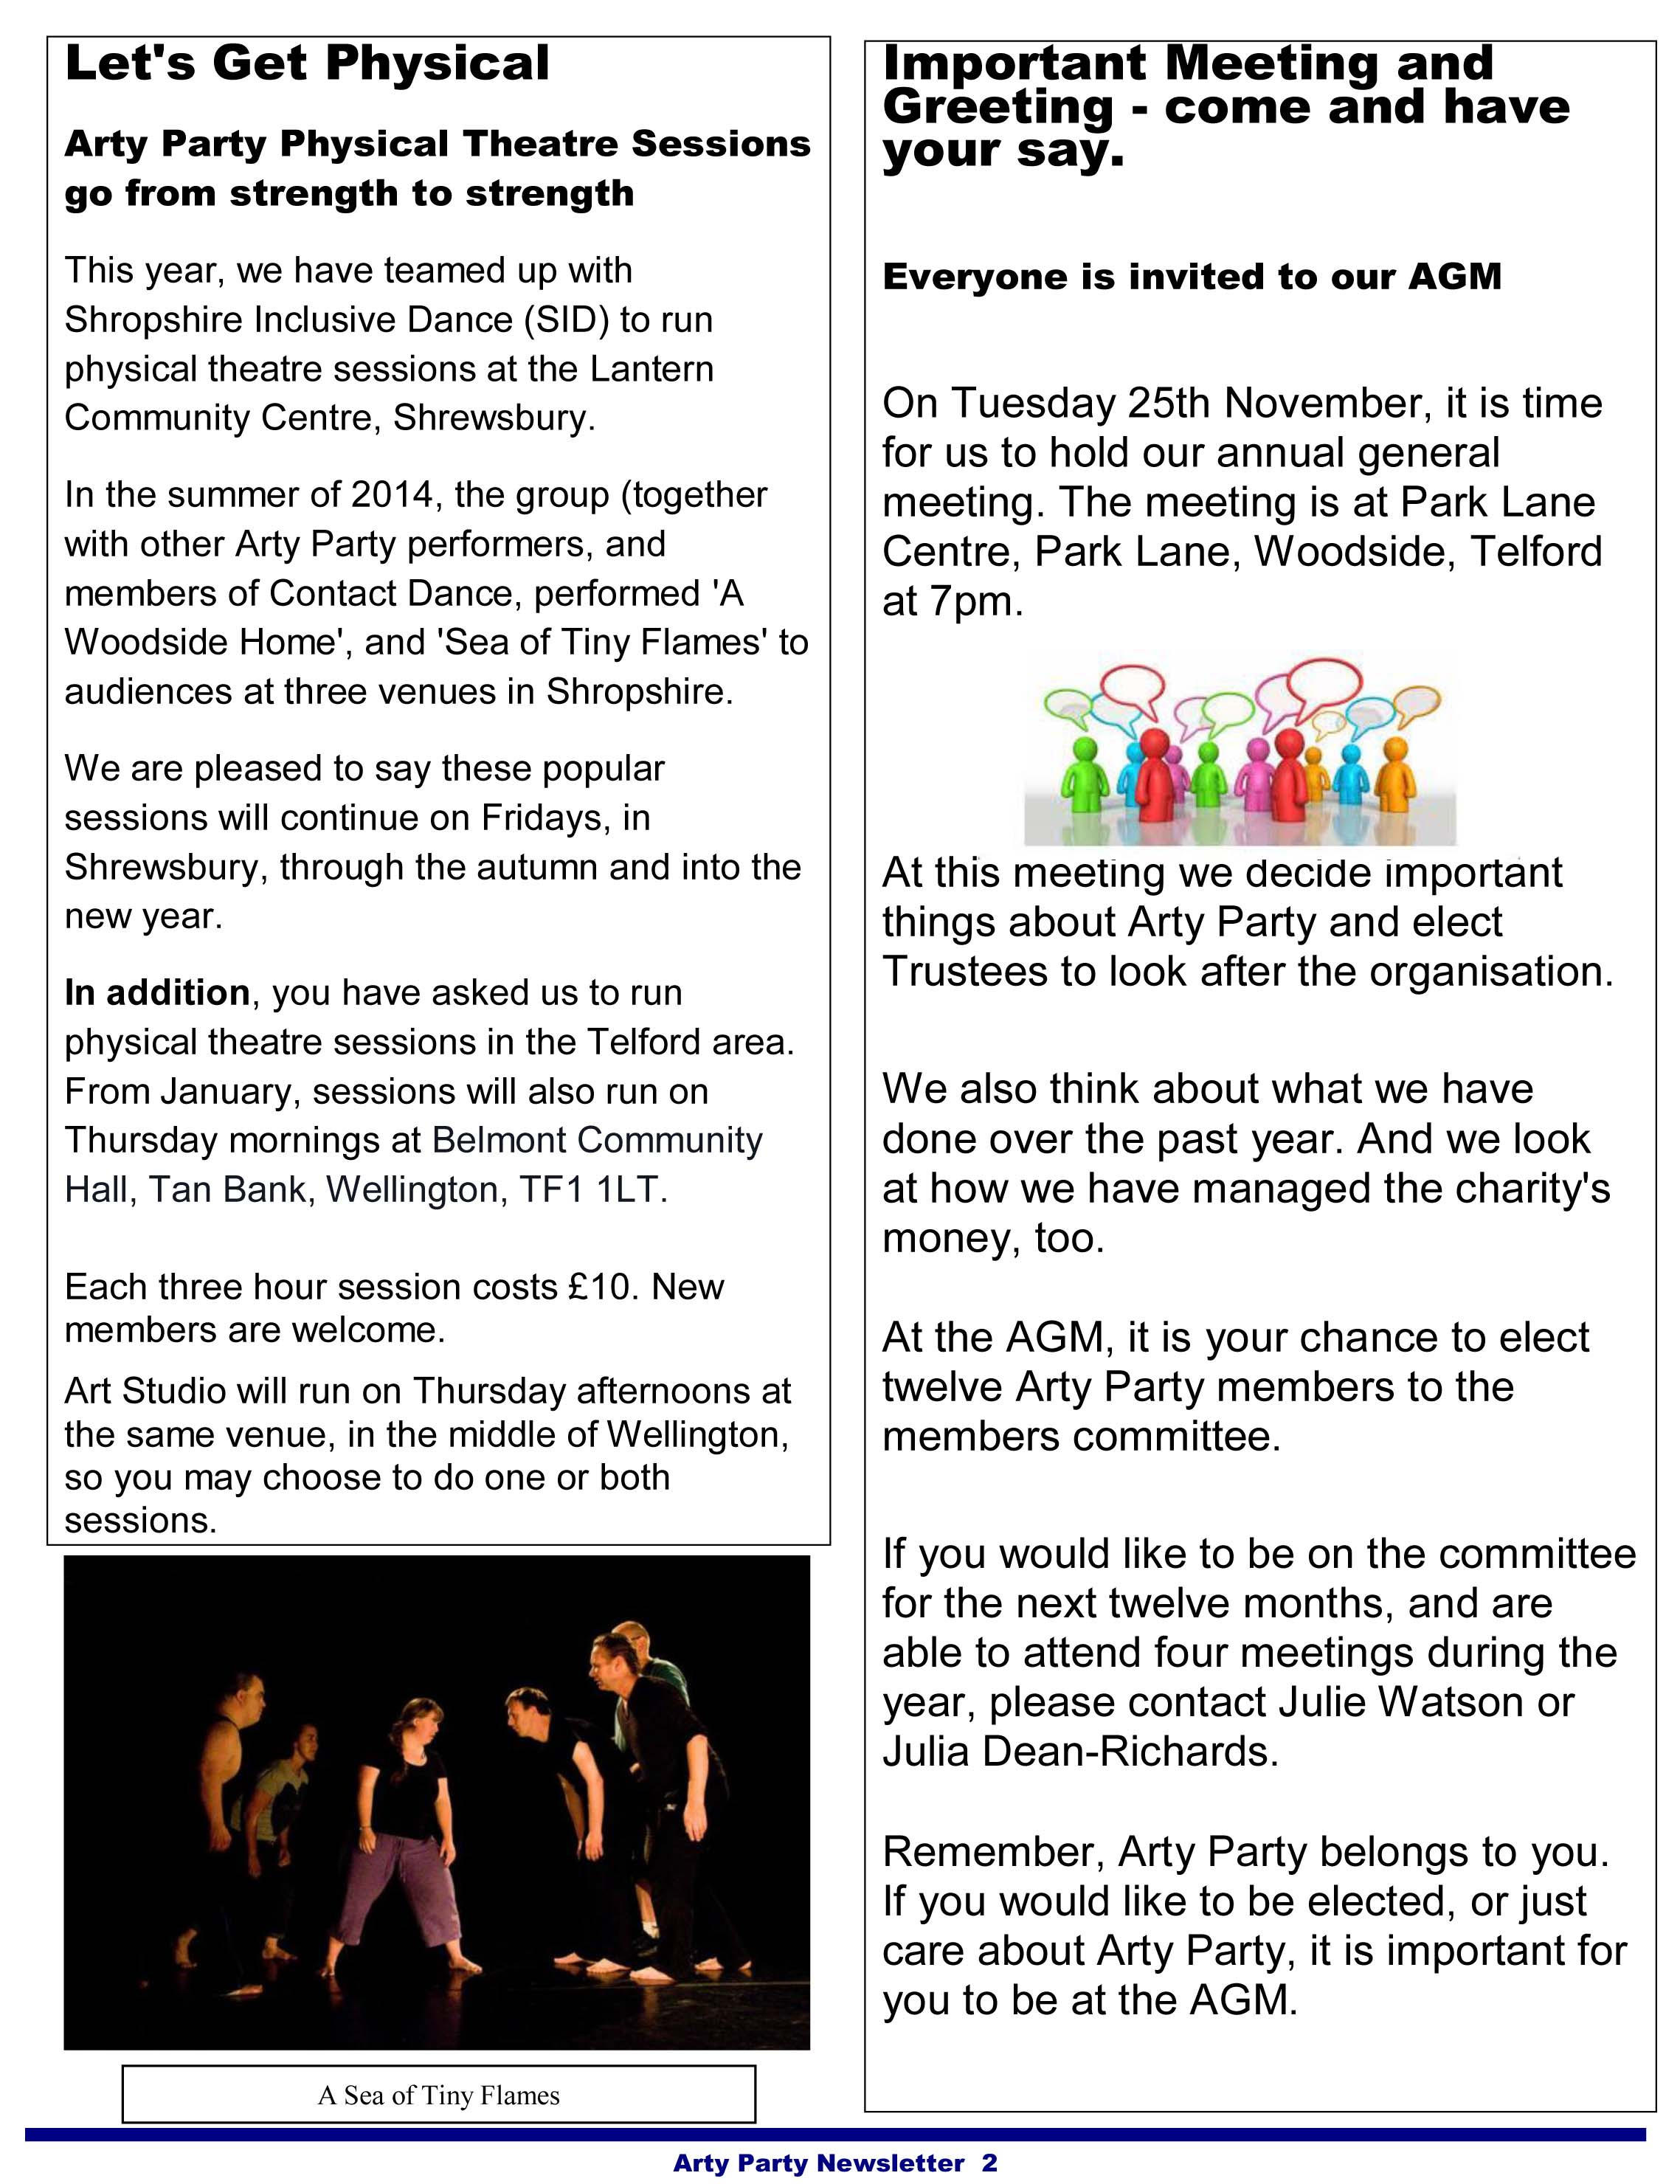 Arty Party Newsletter October 2014 real-2